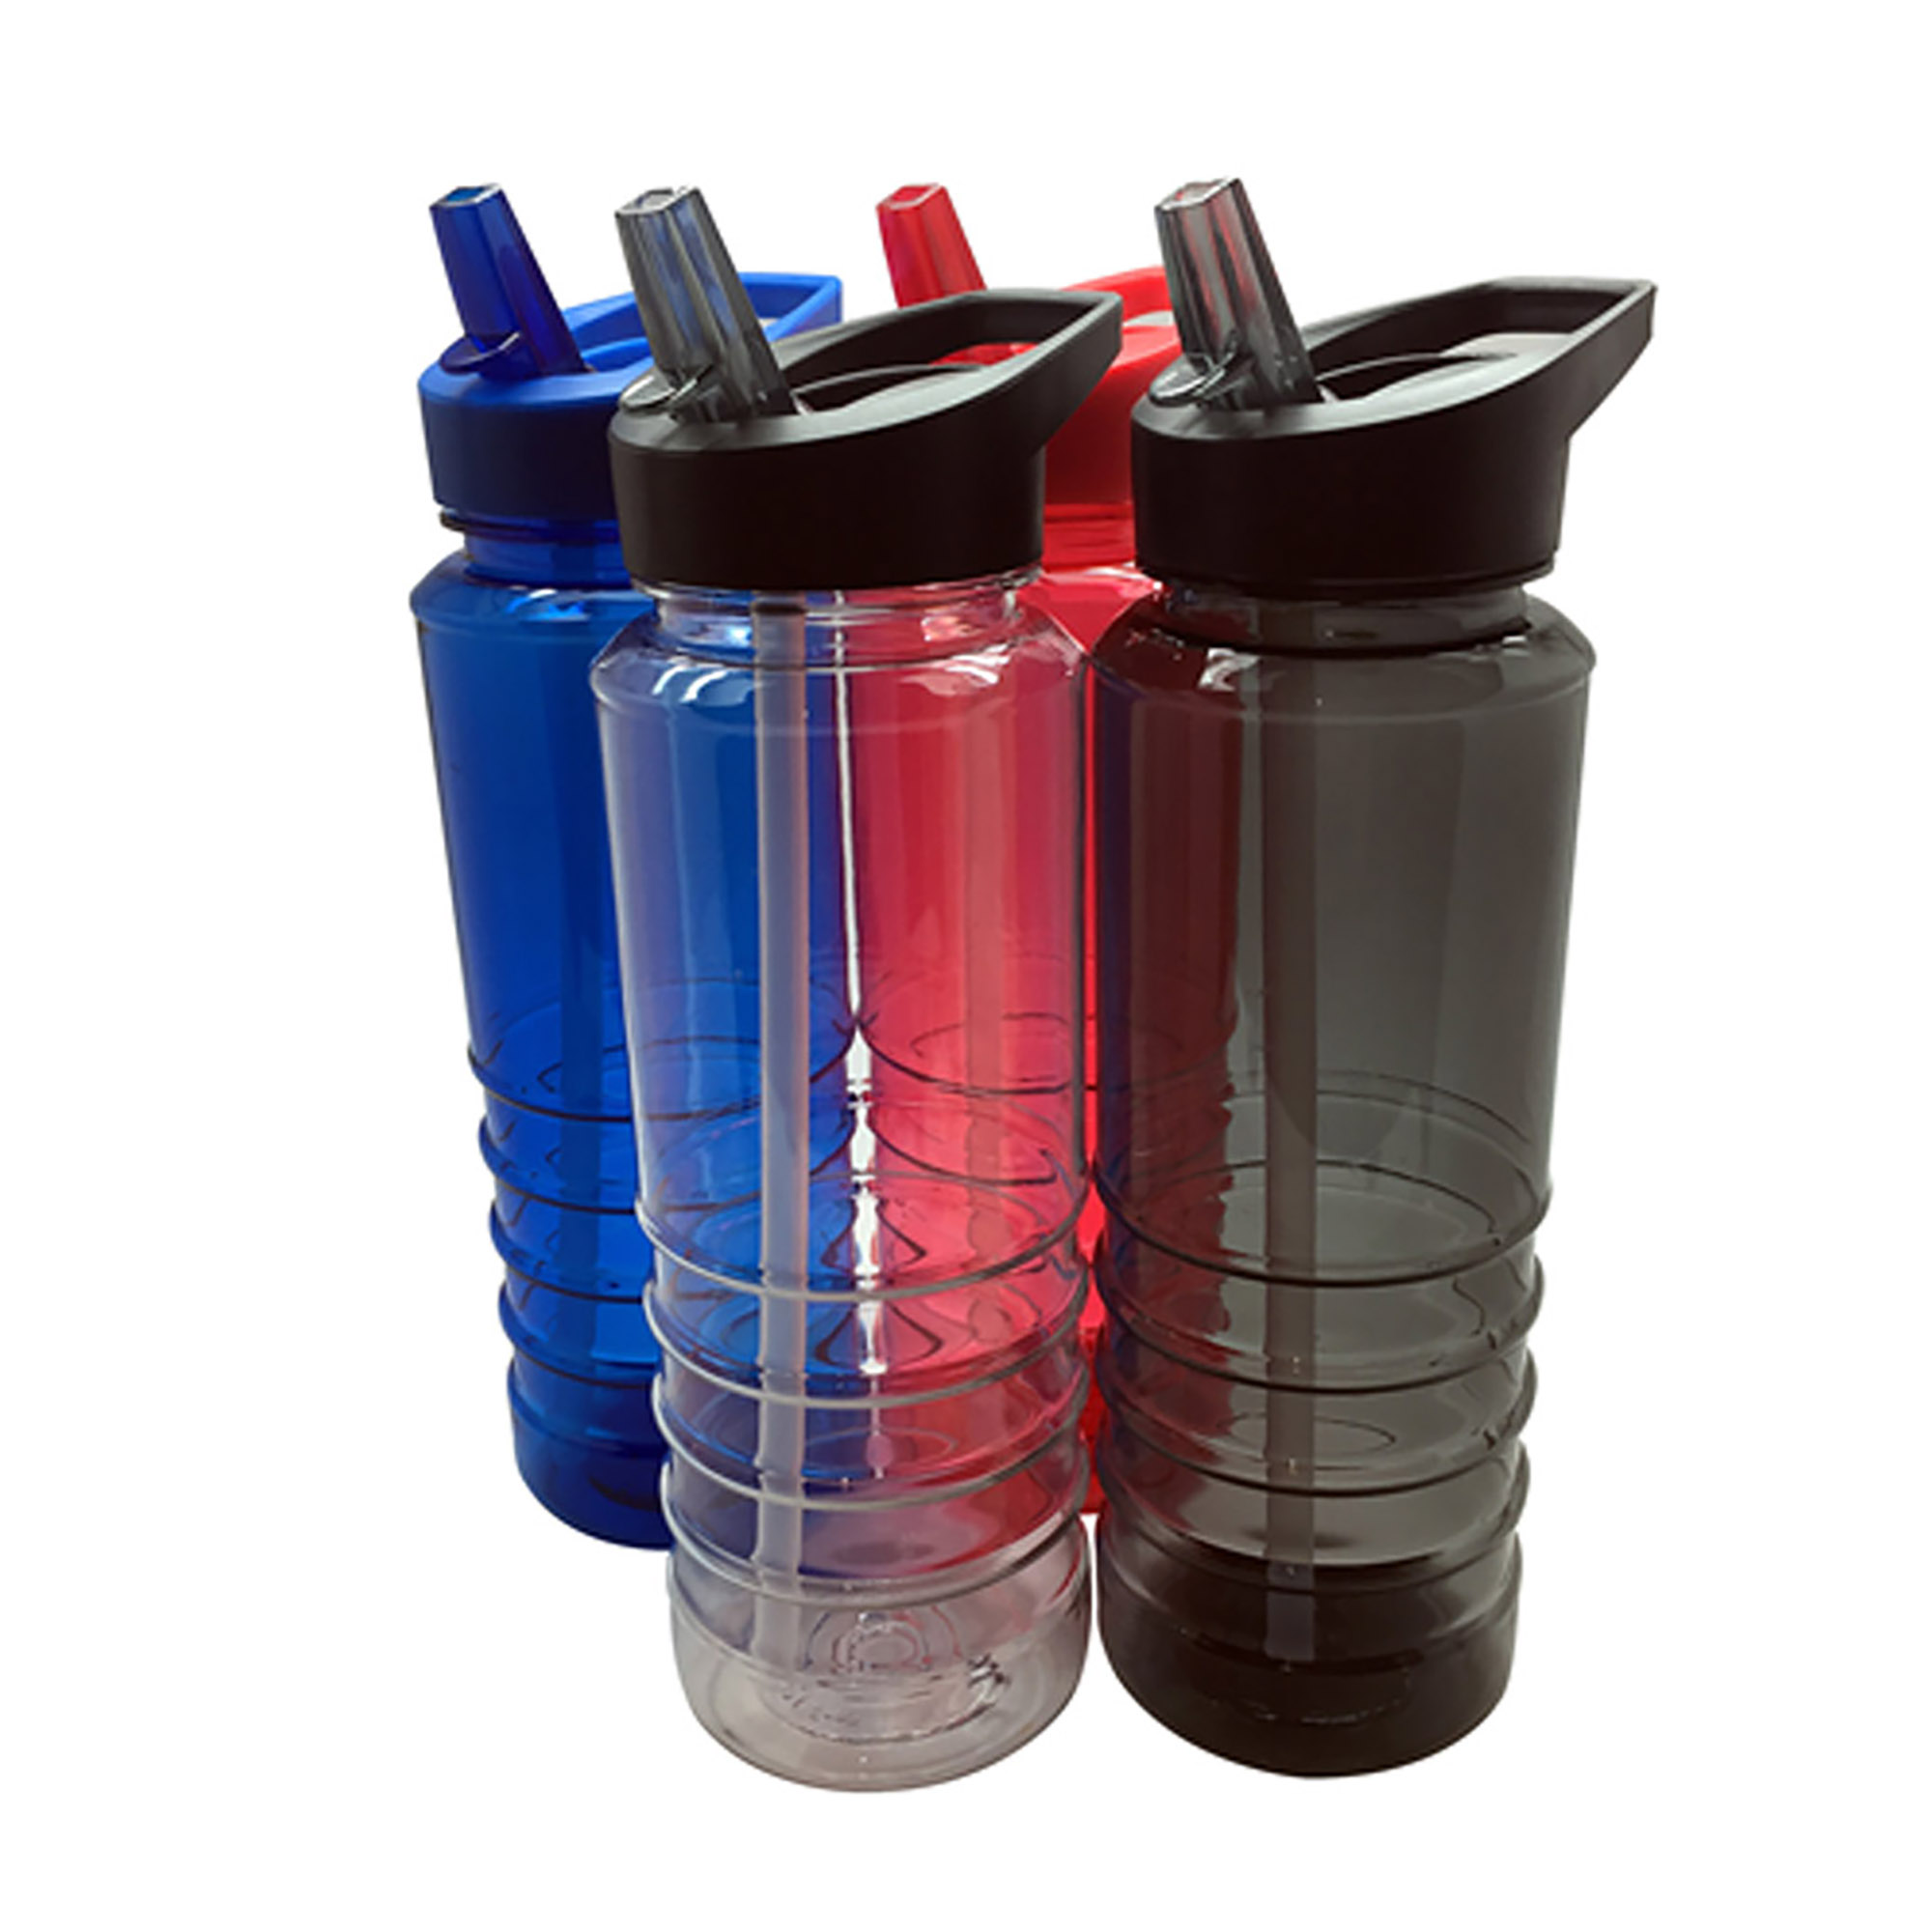 HILLTOP DRINK BOTTLE - 1 Colour Print, From $4.08